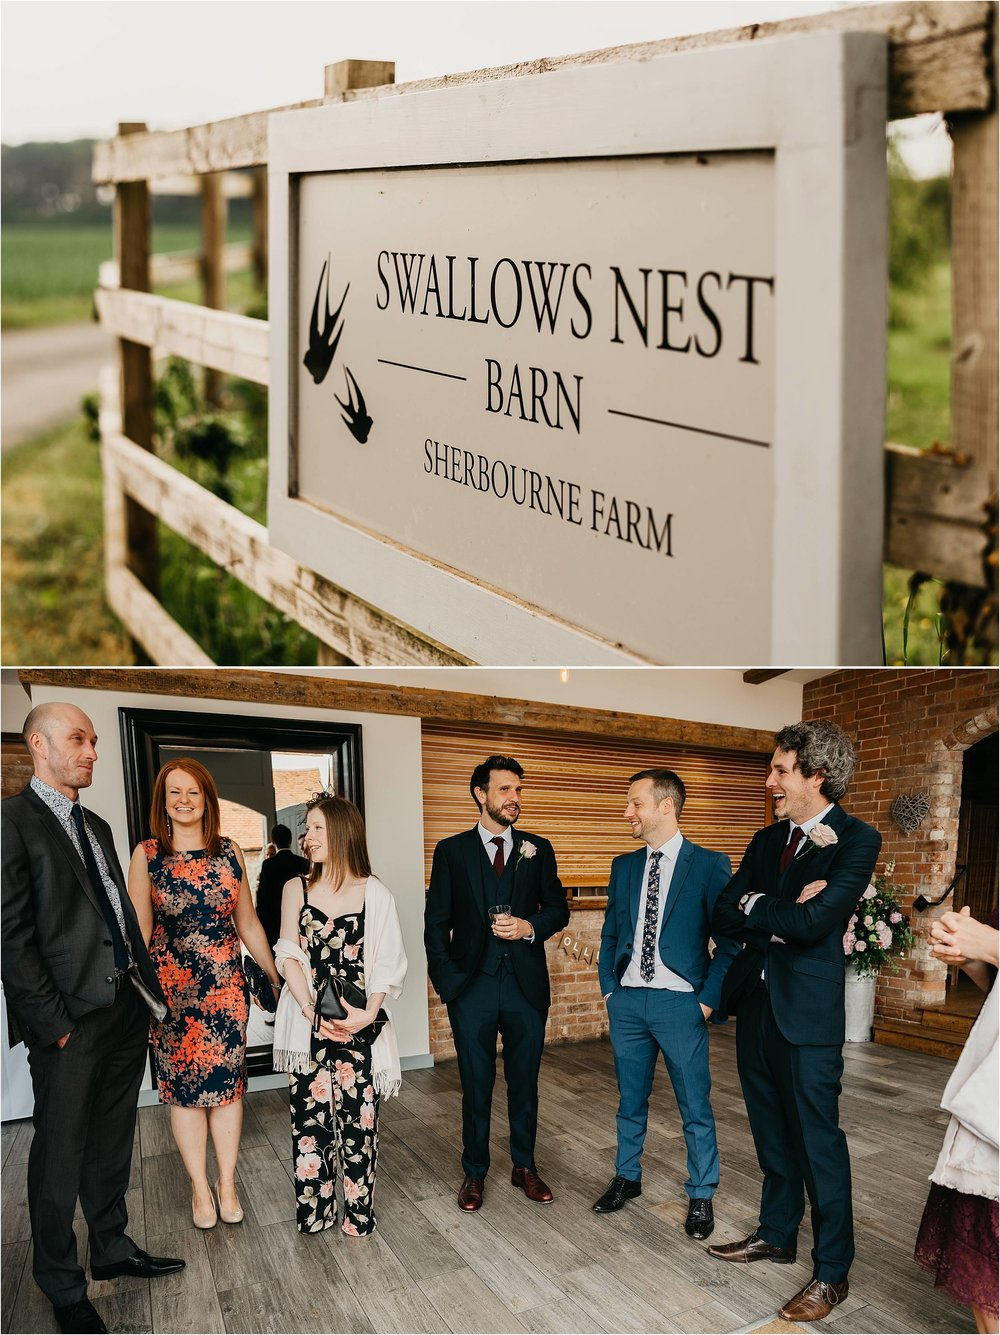 Swallows Nest Barn Wedding Photography_0133.jpg